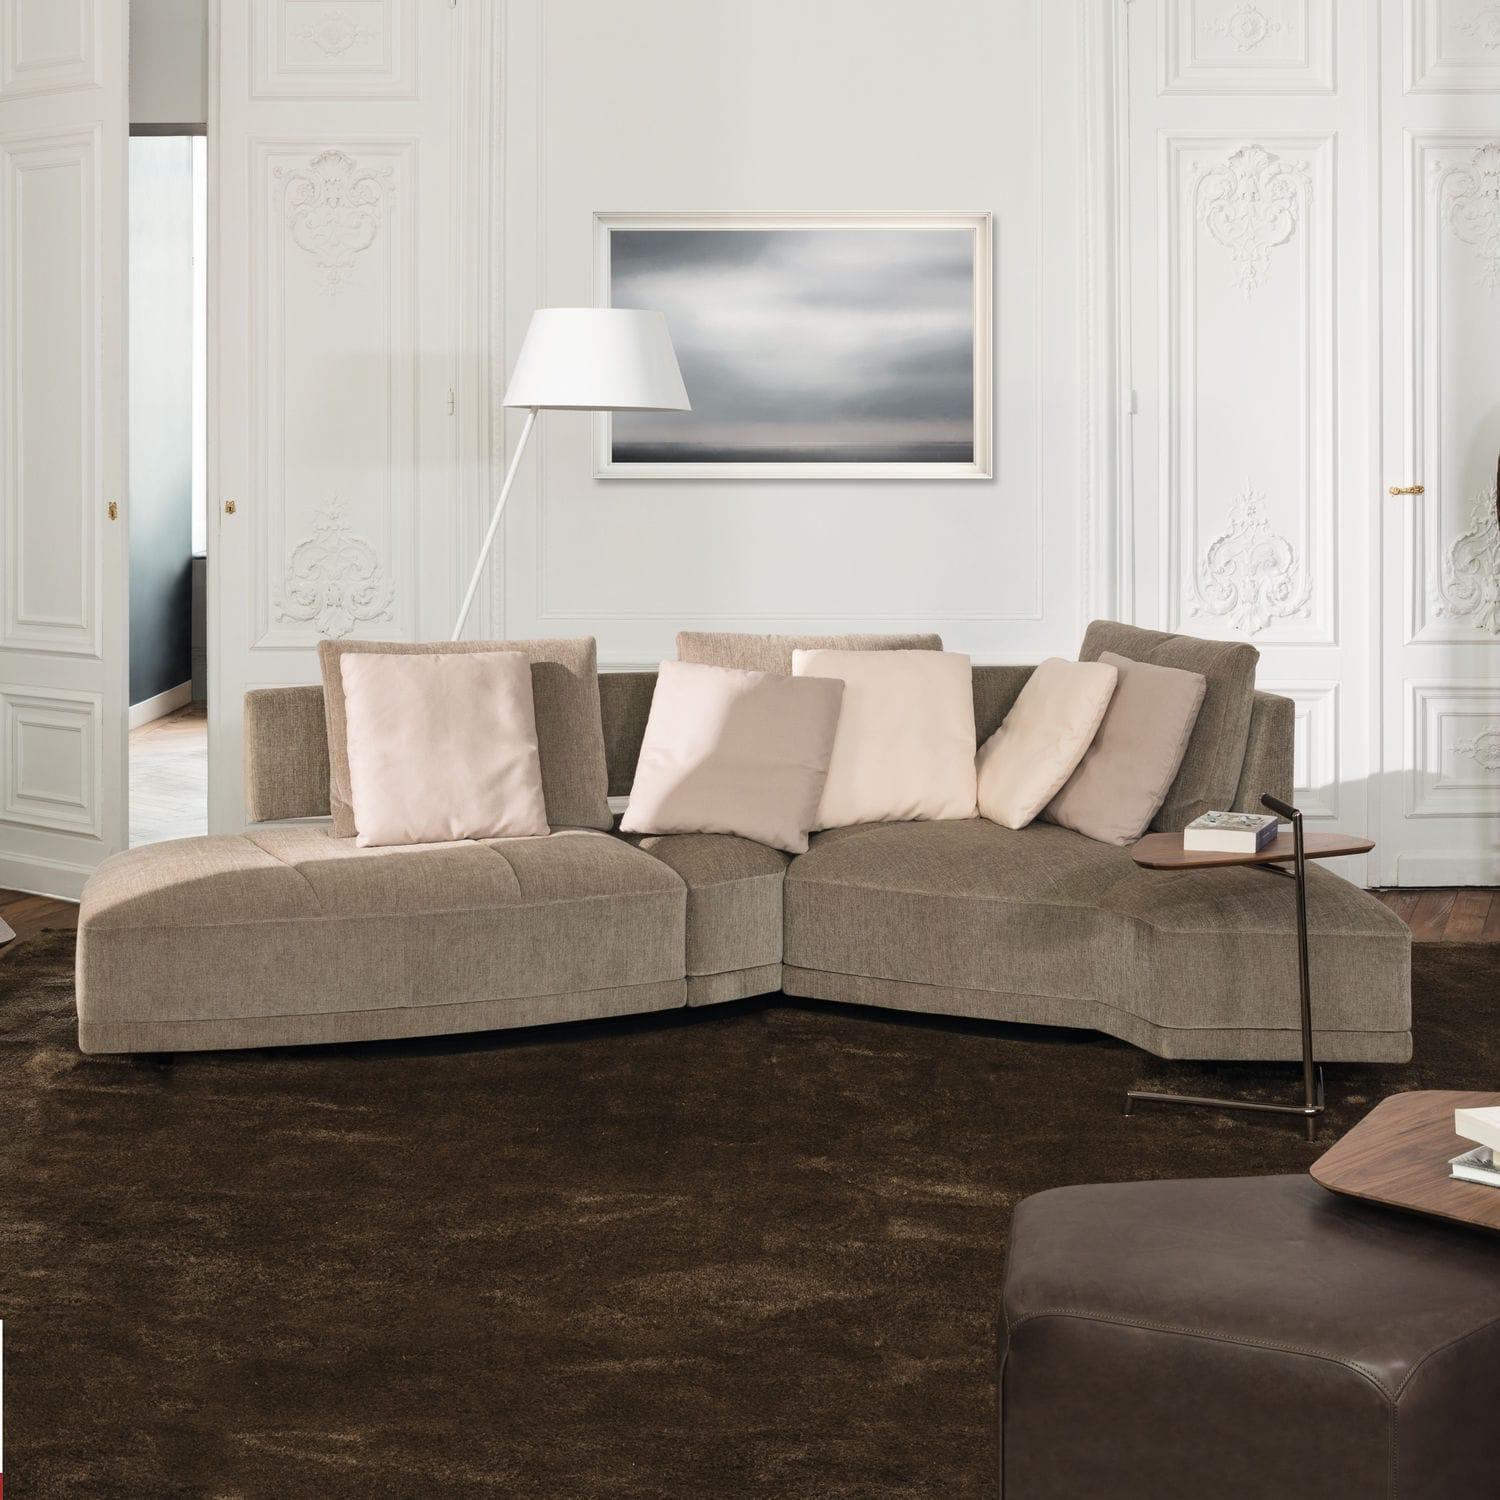 Modular sofa / contemporary / leather / fabric - WING DIVAN BASE ...